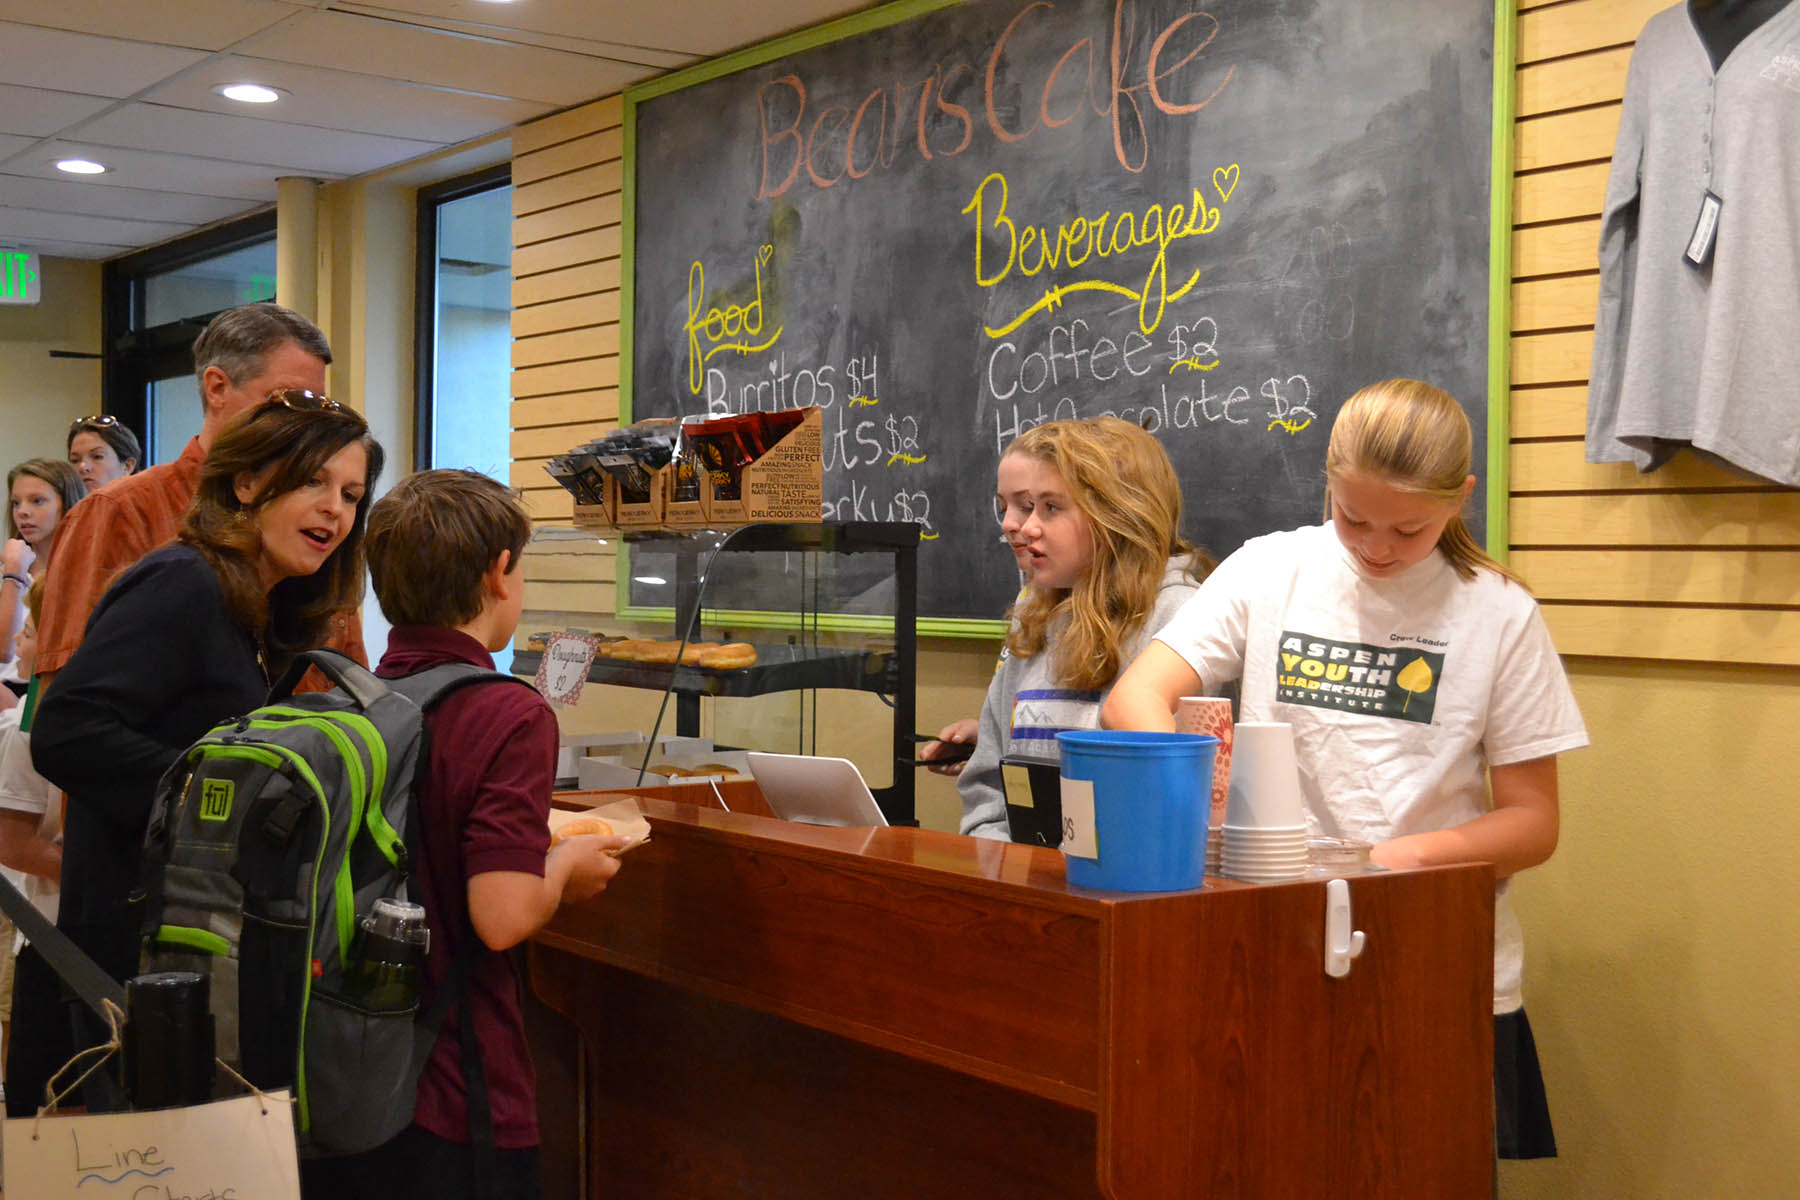 Aspen students running the Bear's Cafe